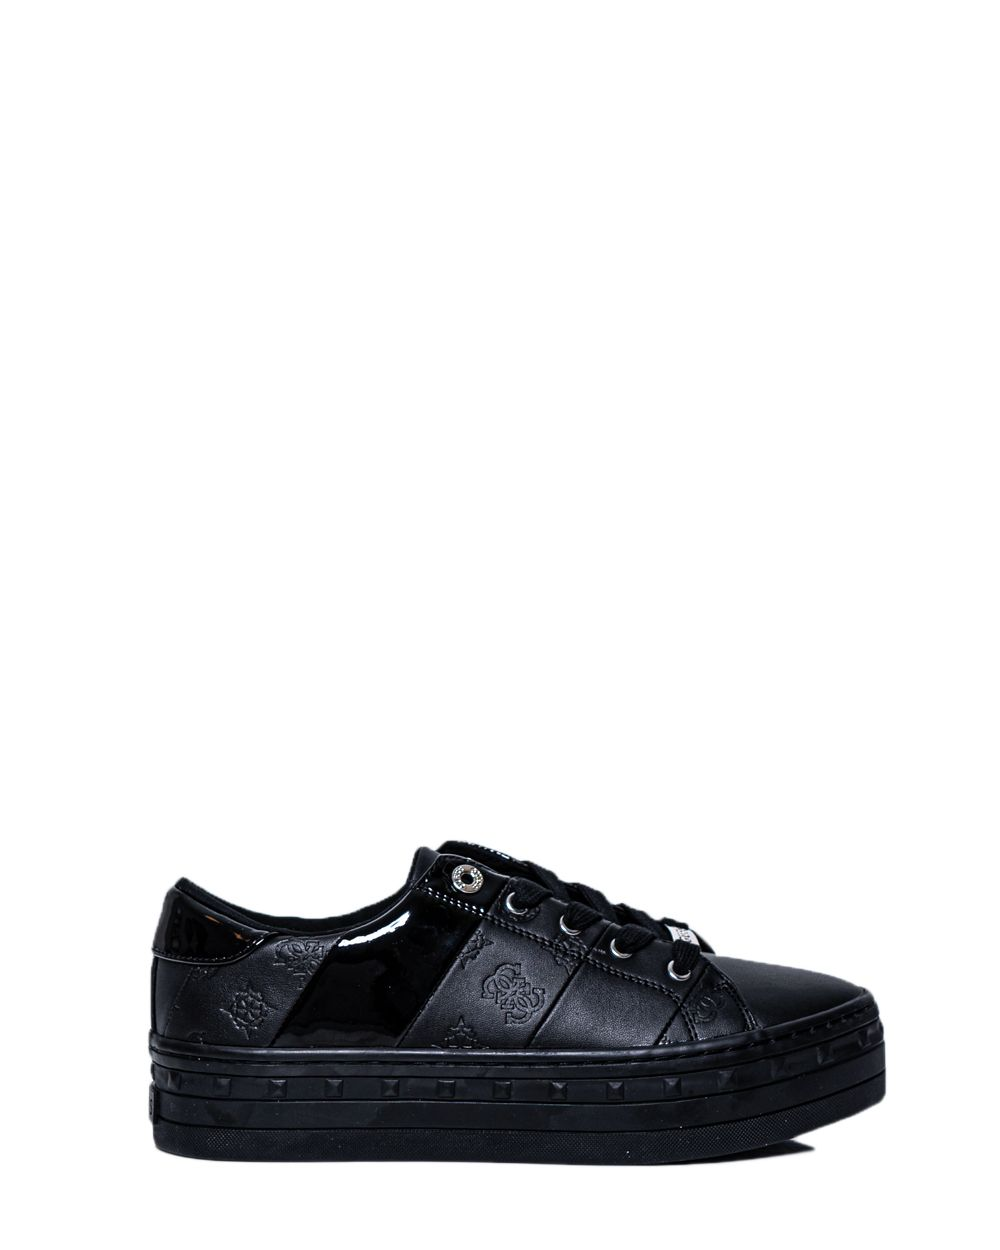 Guess GUESS WOMEN'S FL8BUSFAL12BLACK BLACK LEATHER SNEAKERS